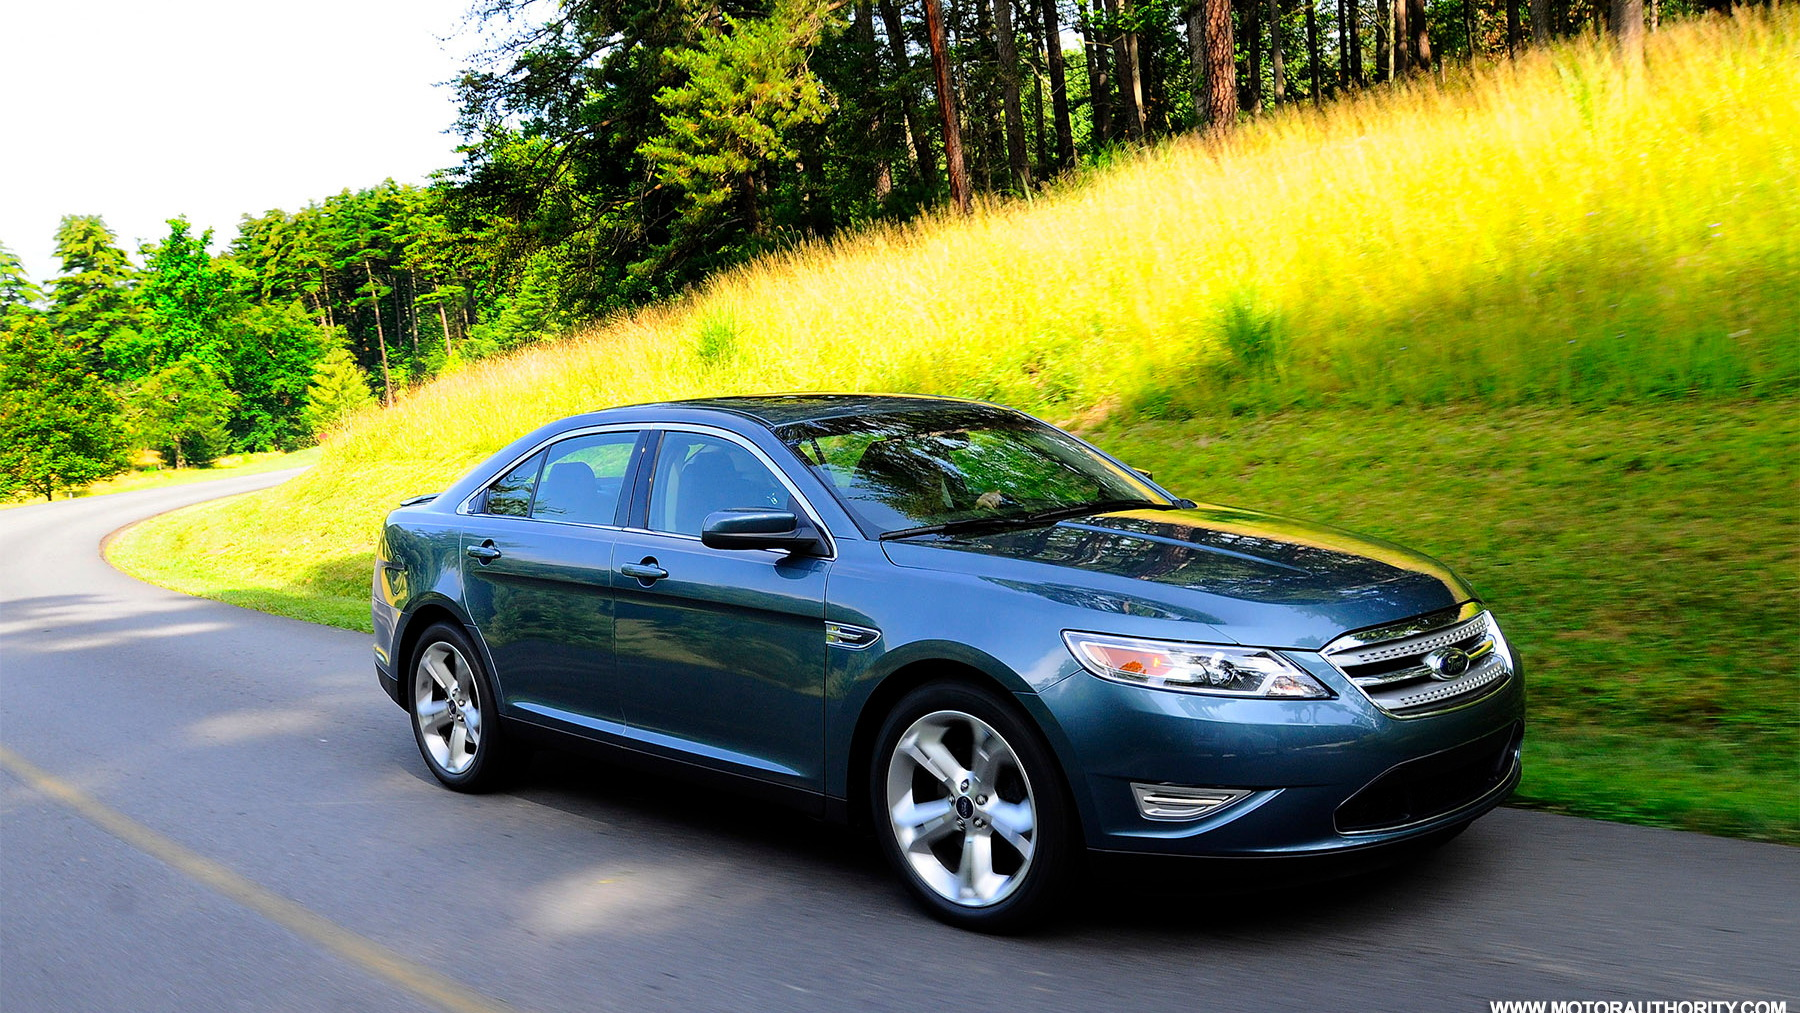 2010 ford taurus sho photo update june 2009 006